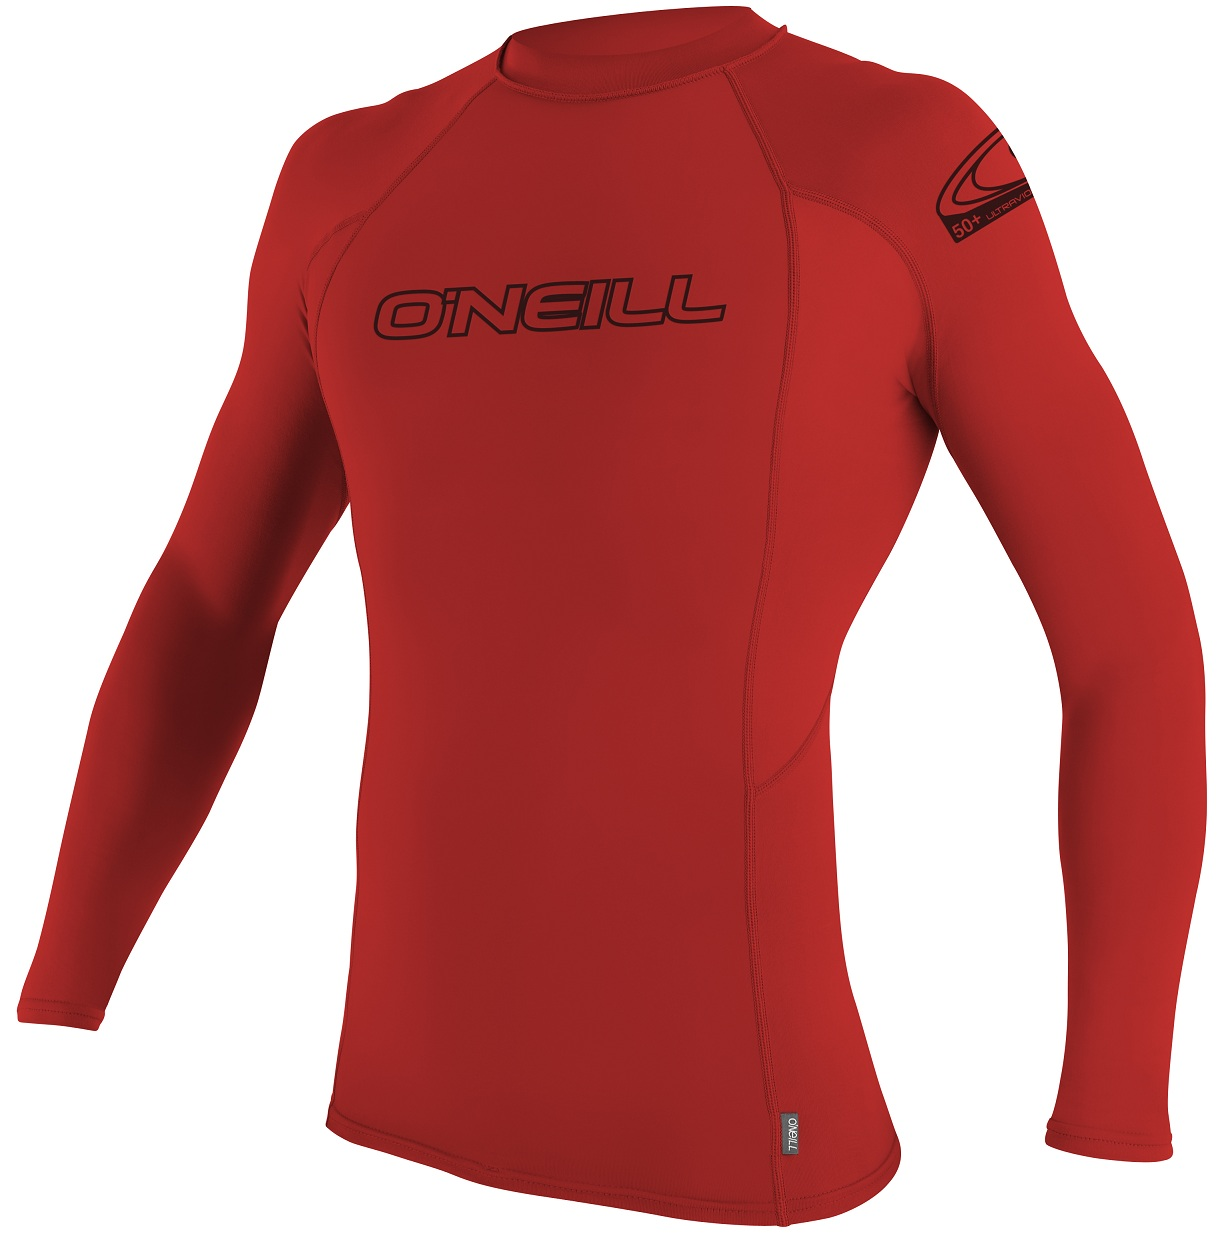 O'Neill Youth Skins Rashguard Long Sleeve 50+ UV Protection -Red - 3346-020